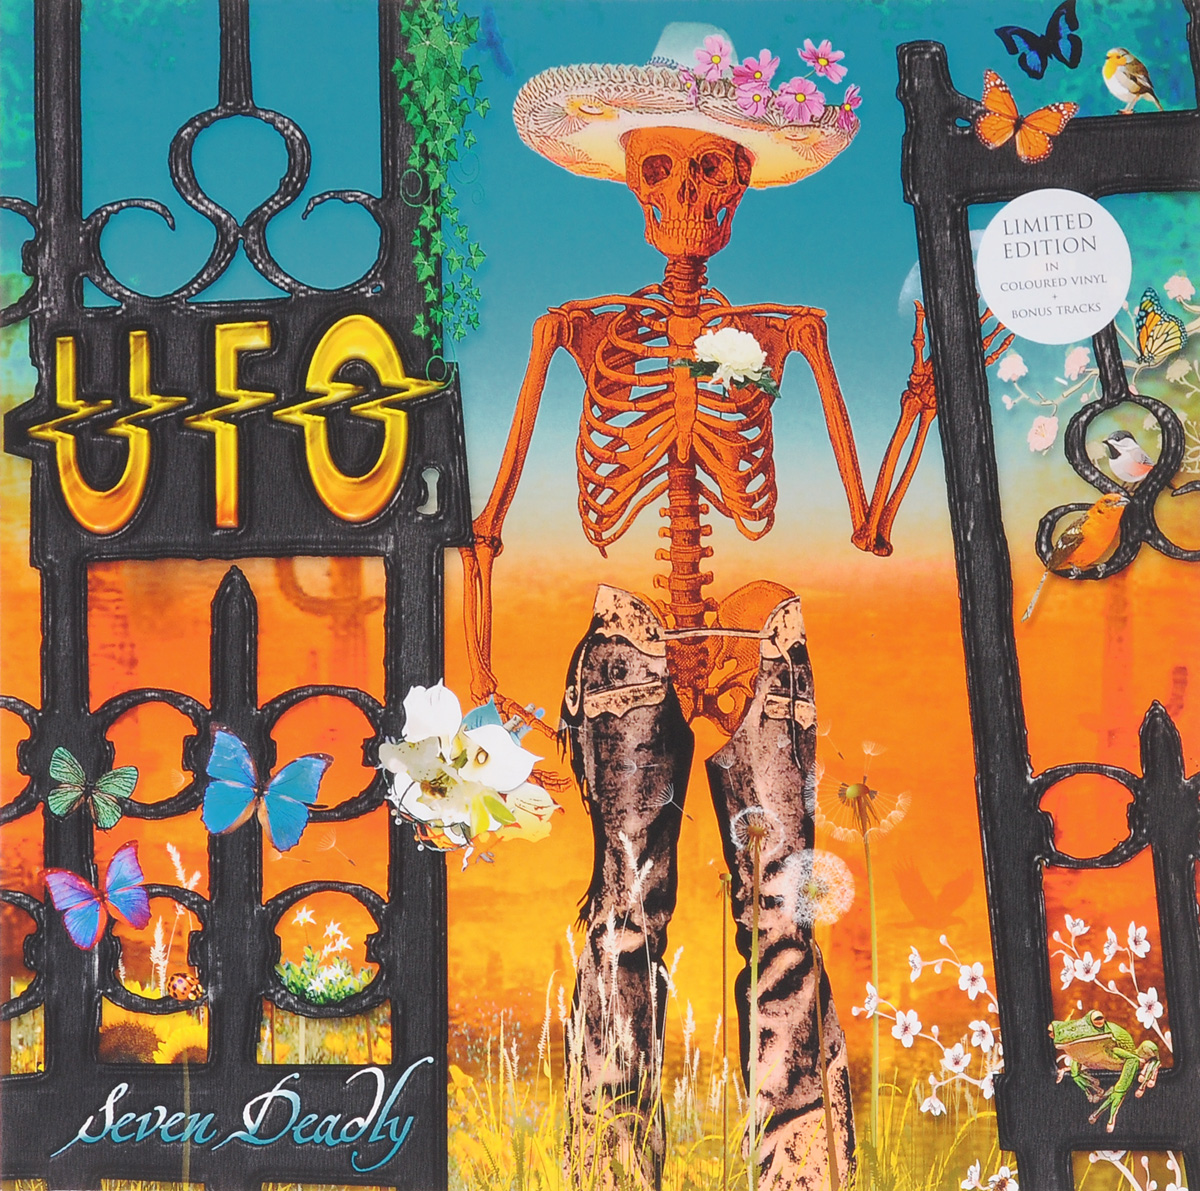 UFO UFO. Seven Deadly. Limited Edition (2 LP) набор насадок ufo 6шт